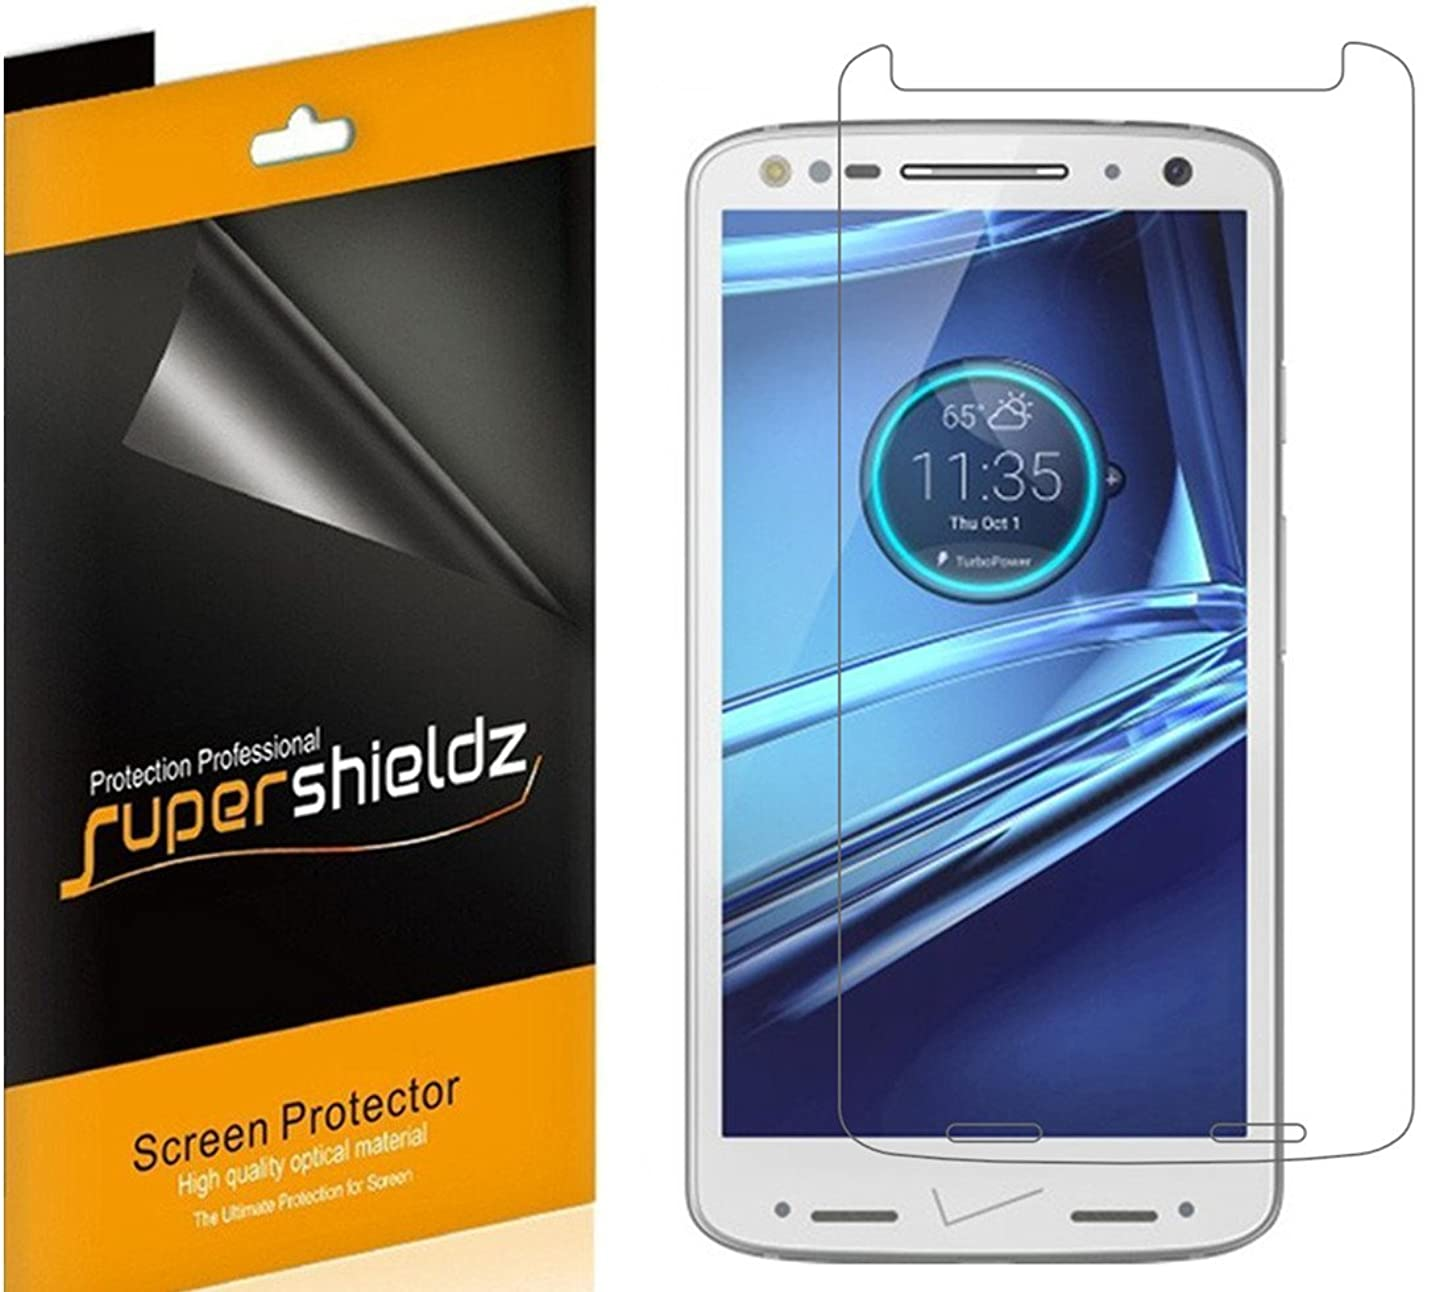 [6-Pack] Supershieldz for Motorola (Droid Turbo 2) Screen Protector, High Definition Clear Shield + Lifetime Replacement wabnhjupyai770